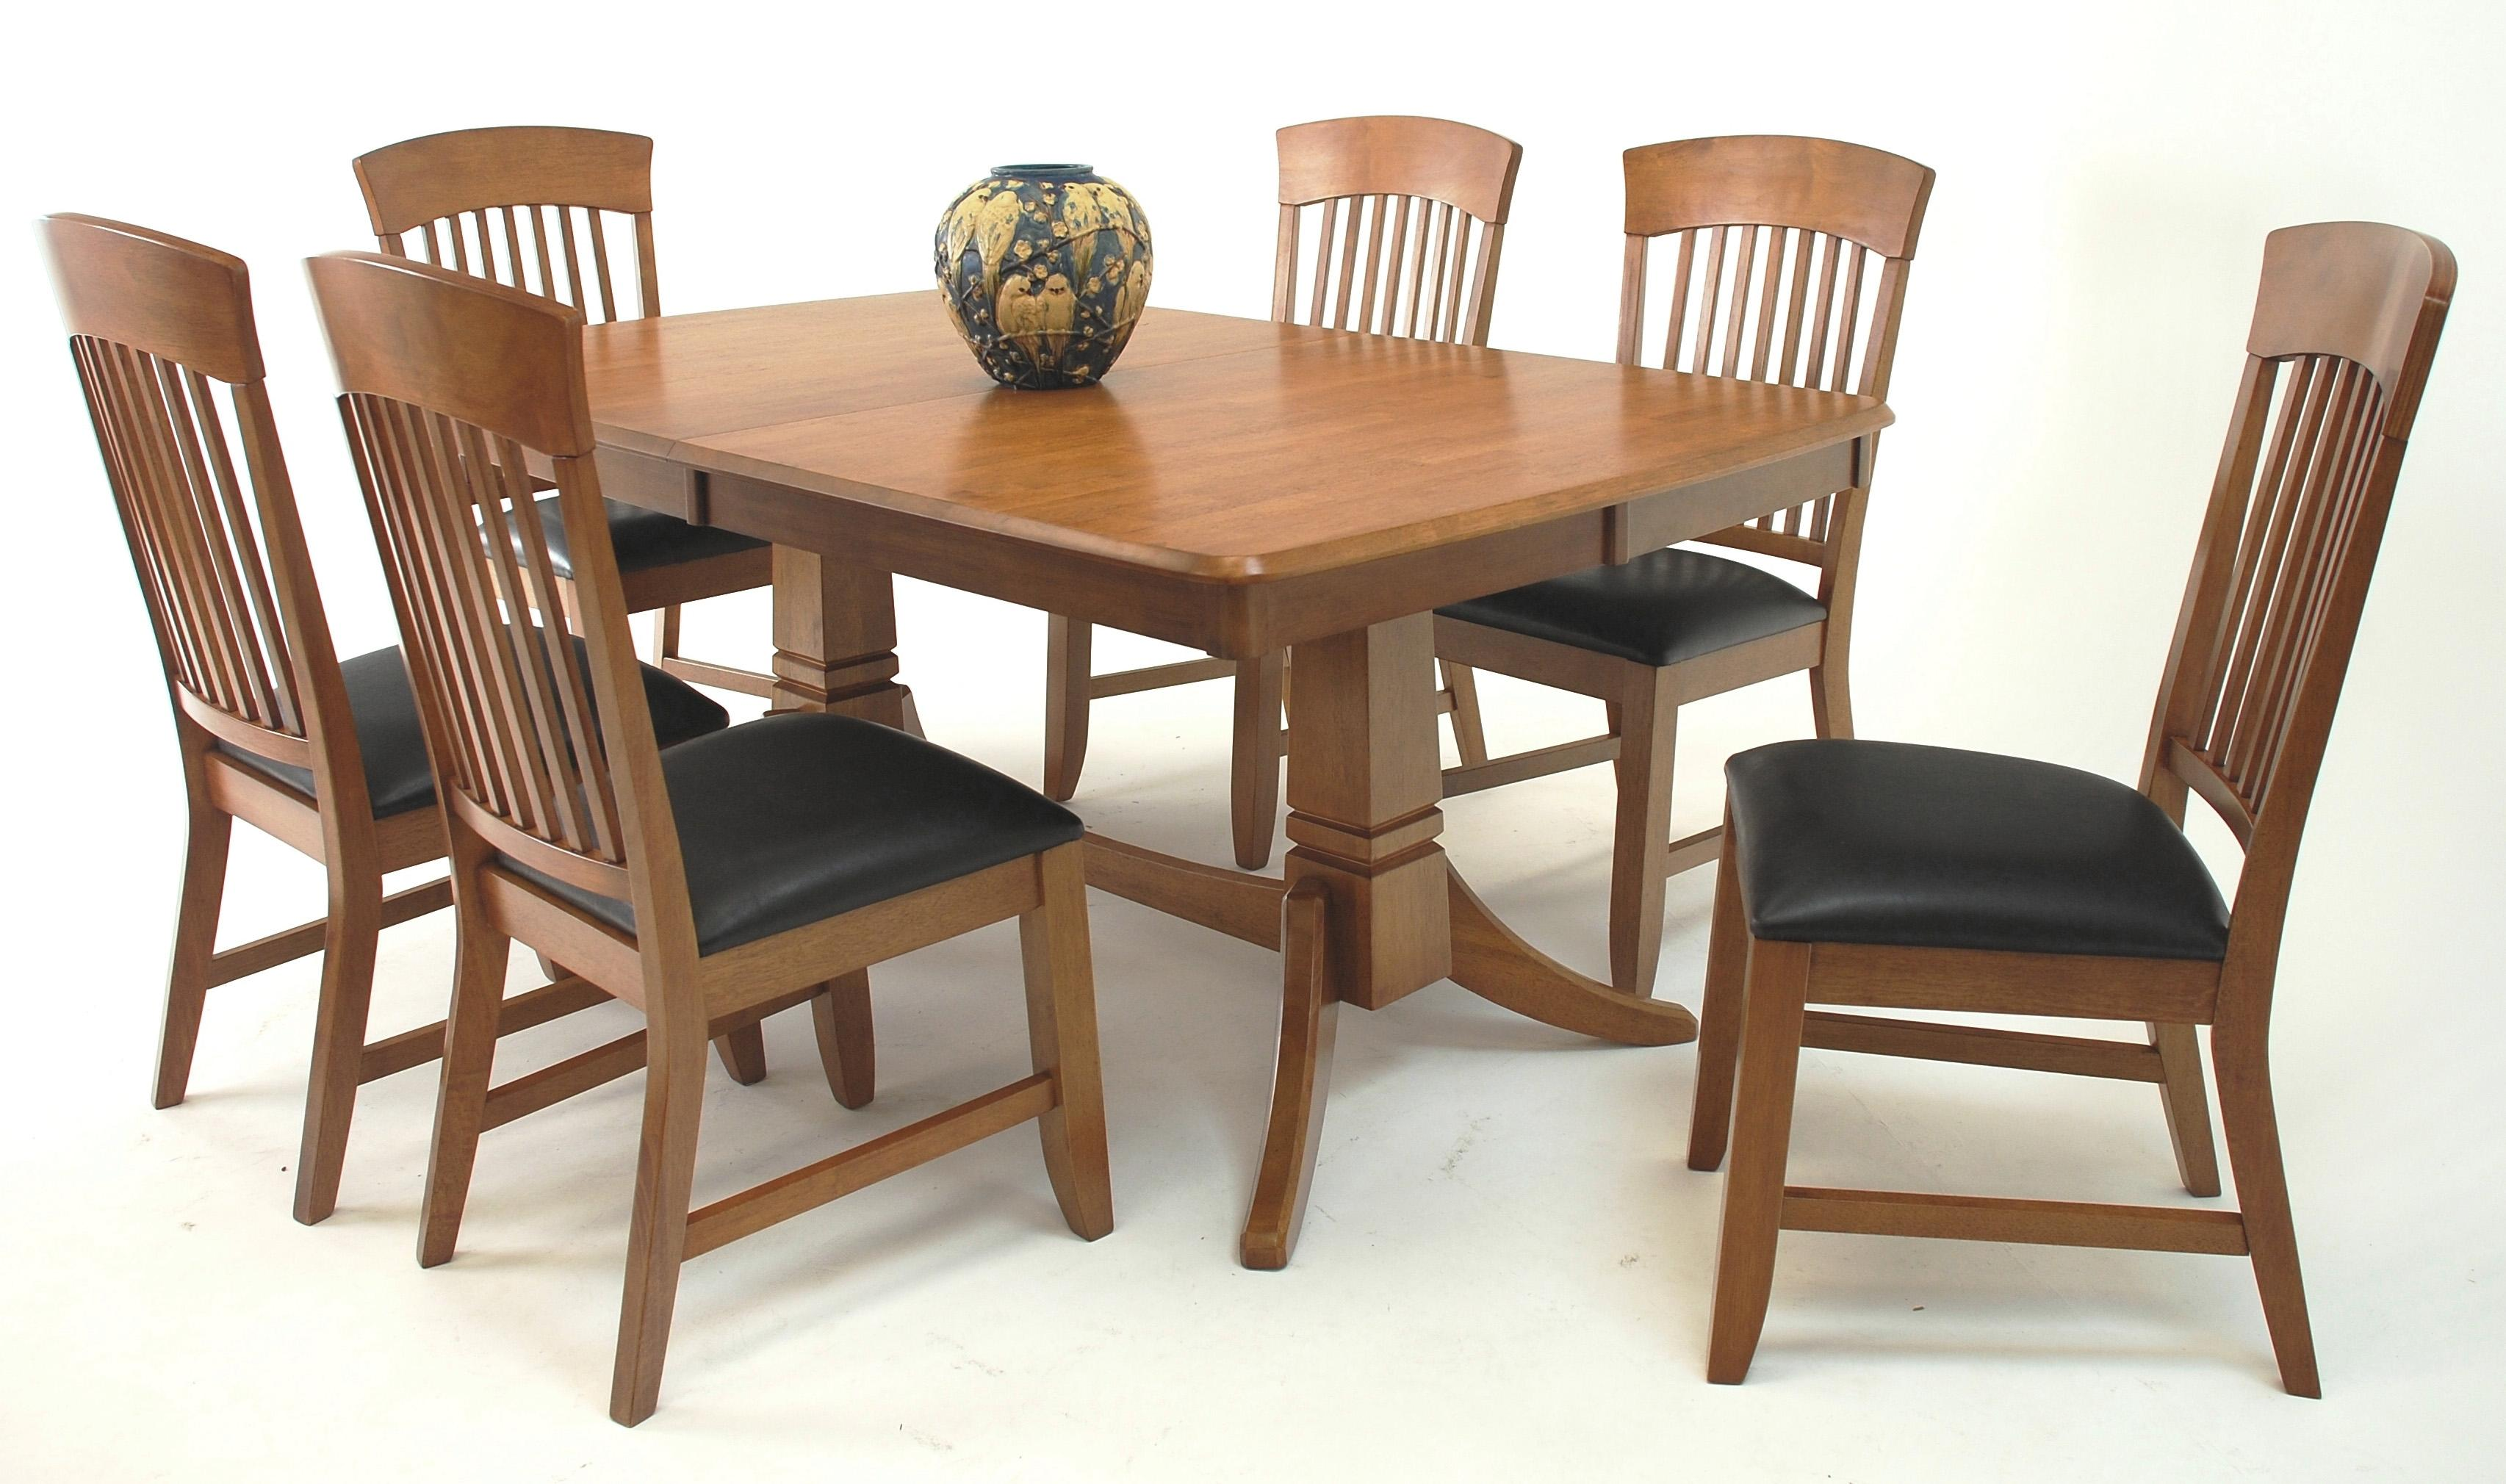 Suburban home trestle dining table and chair set broadway for Dining table and chairs